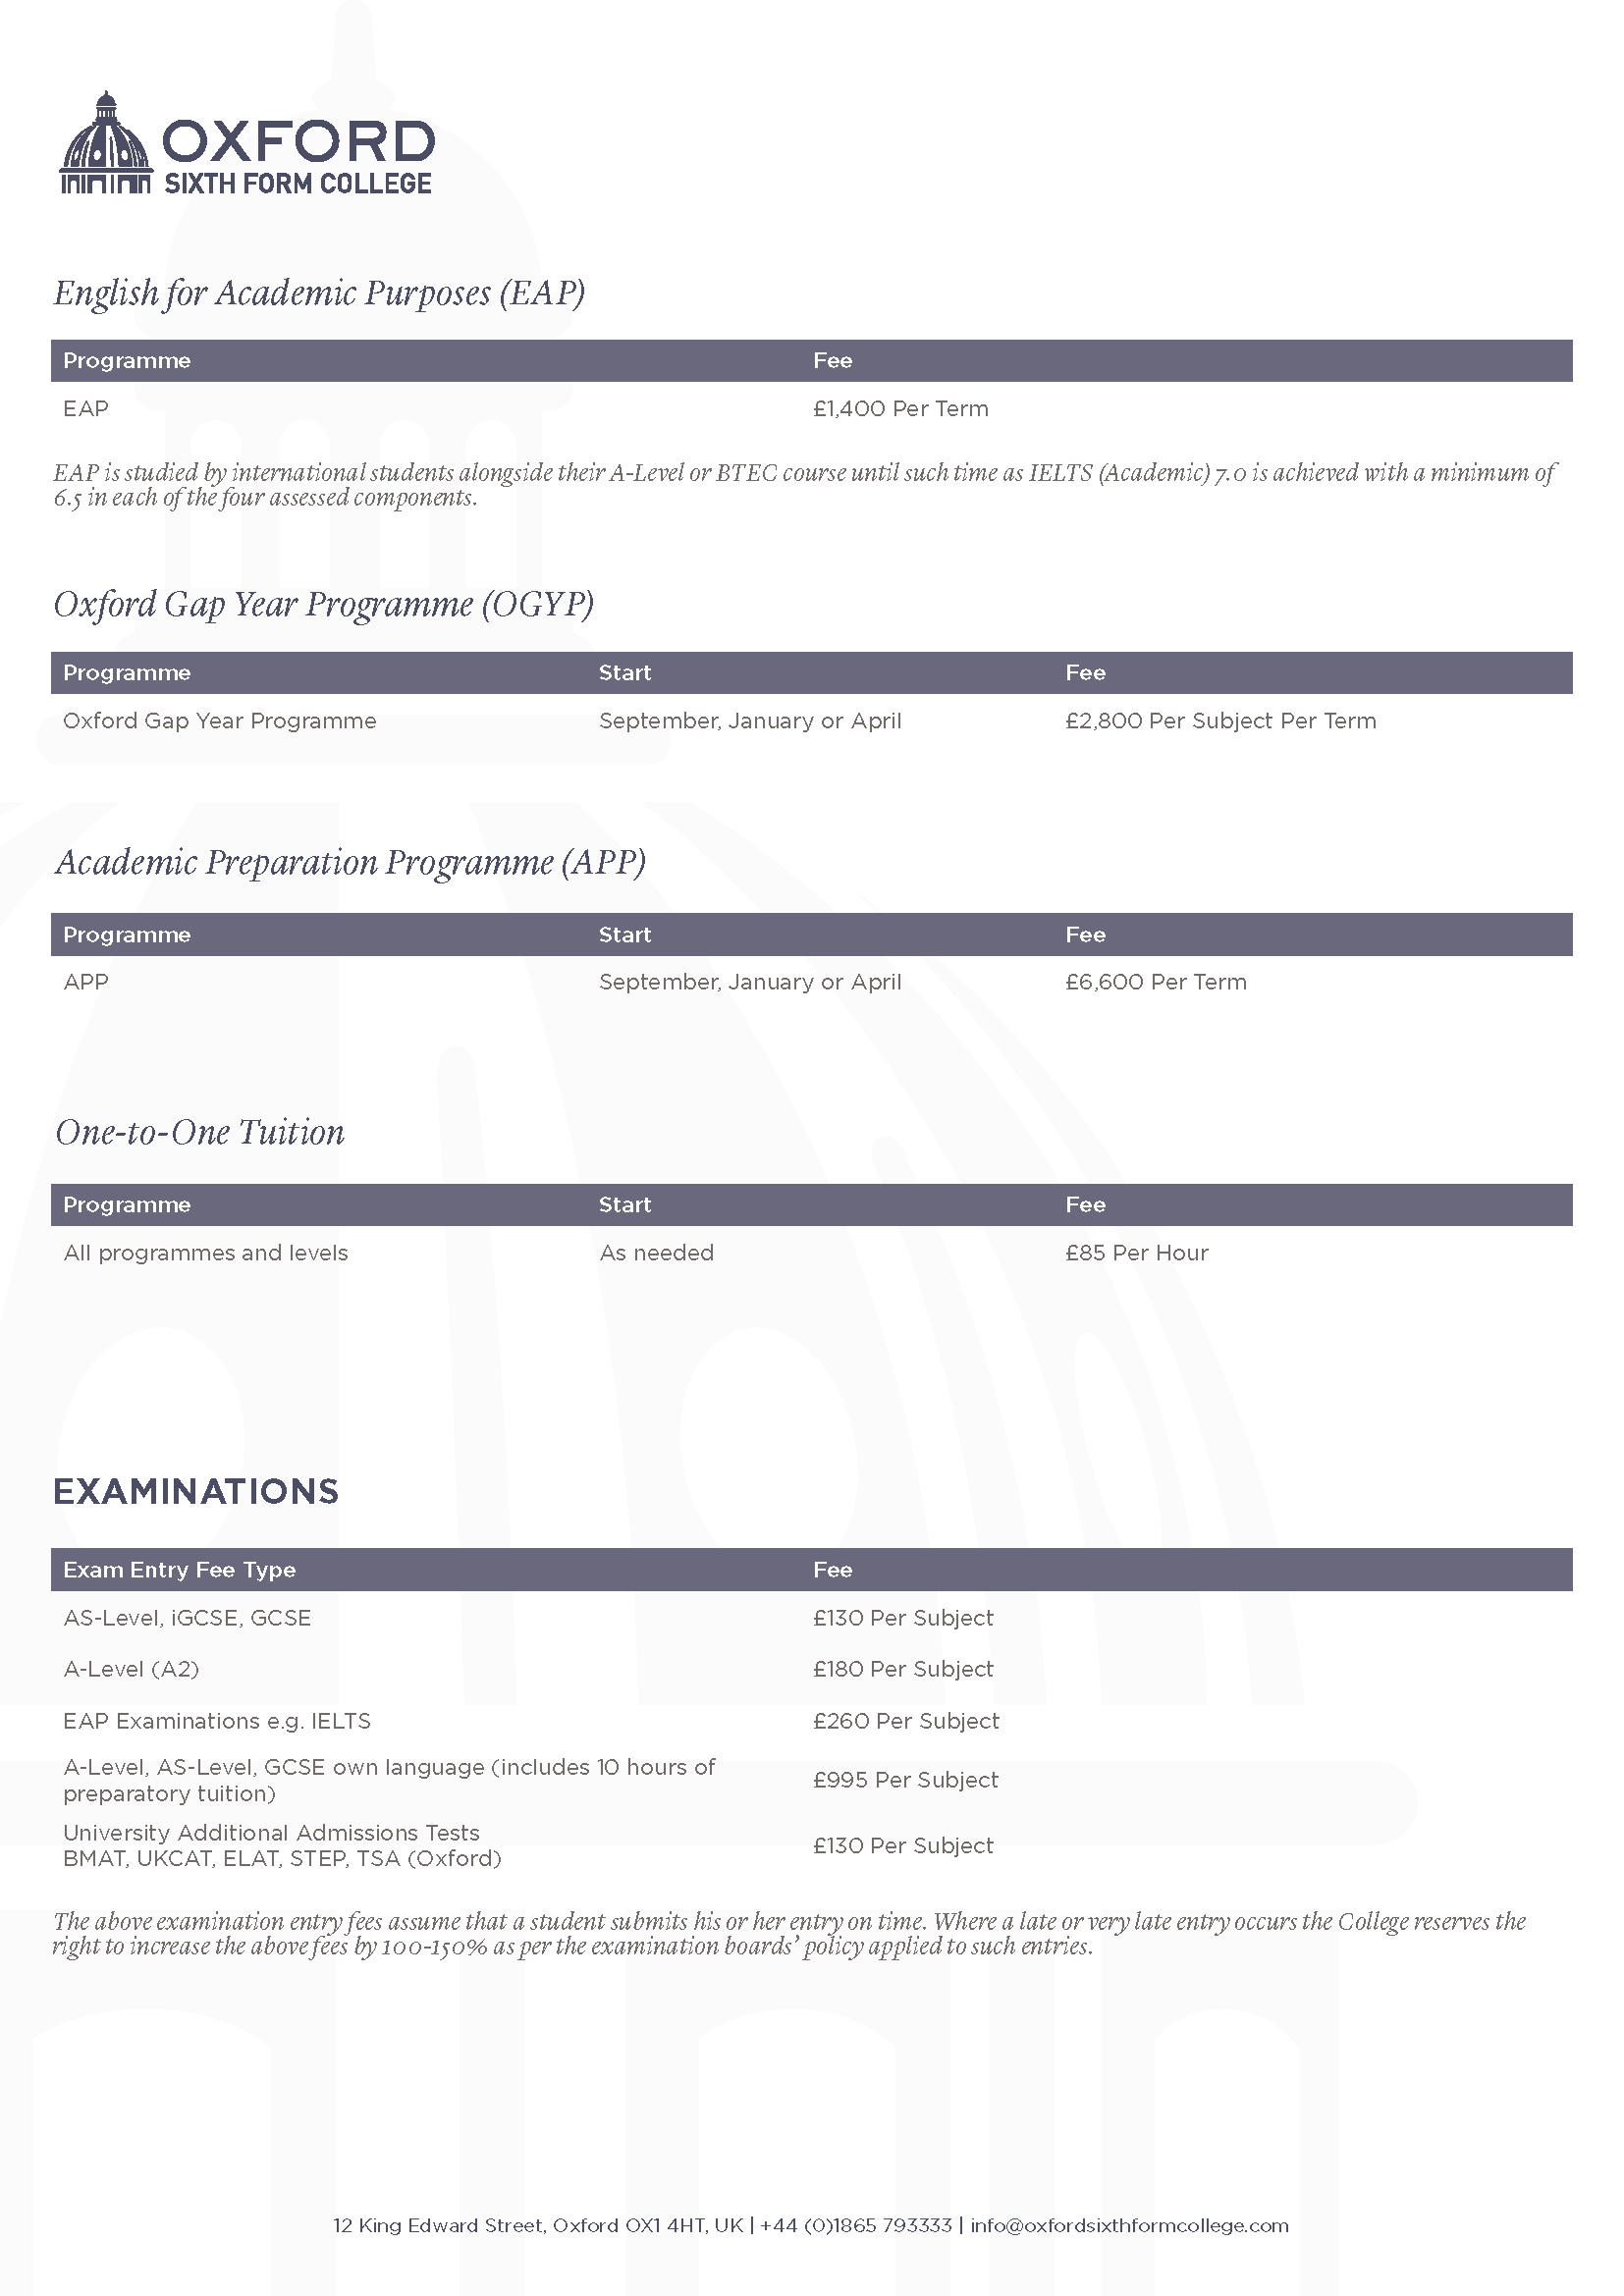 Oxford Sixth Form College 2019-2020 Fees